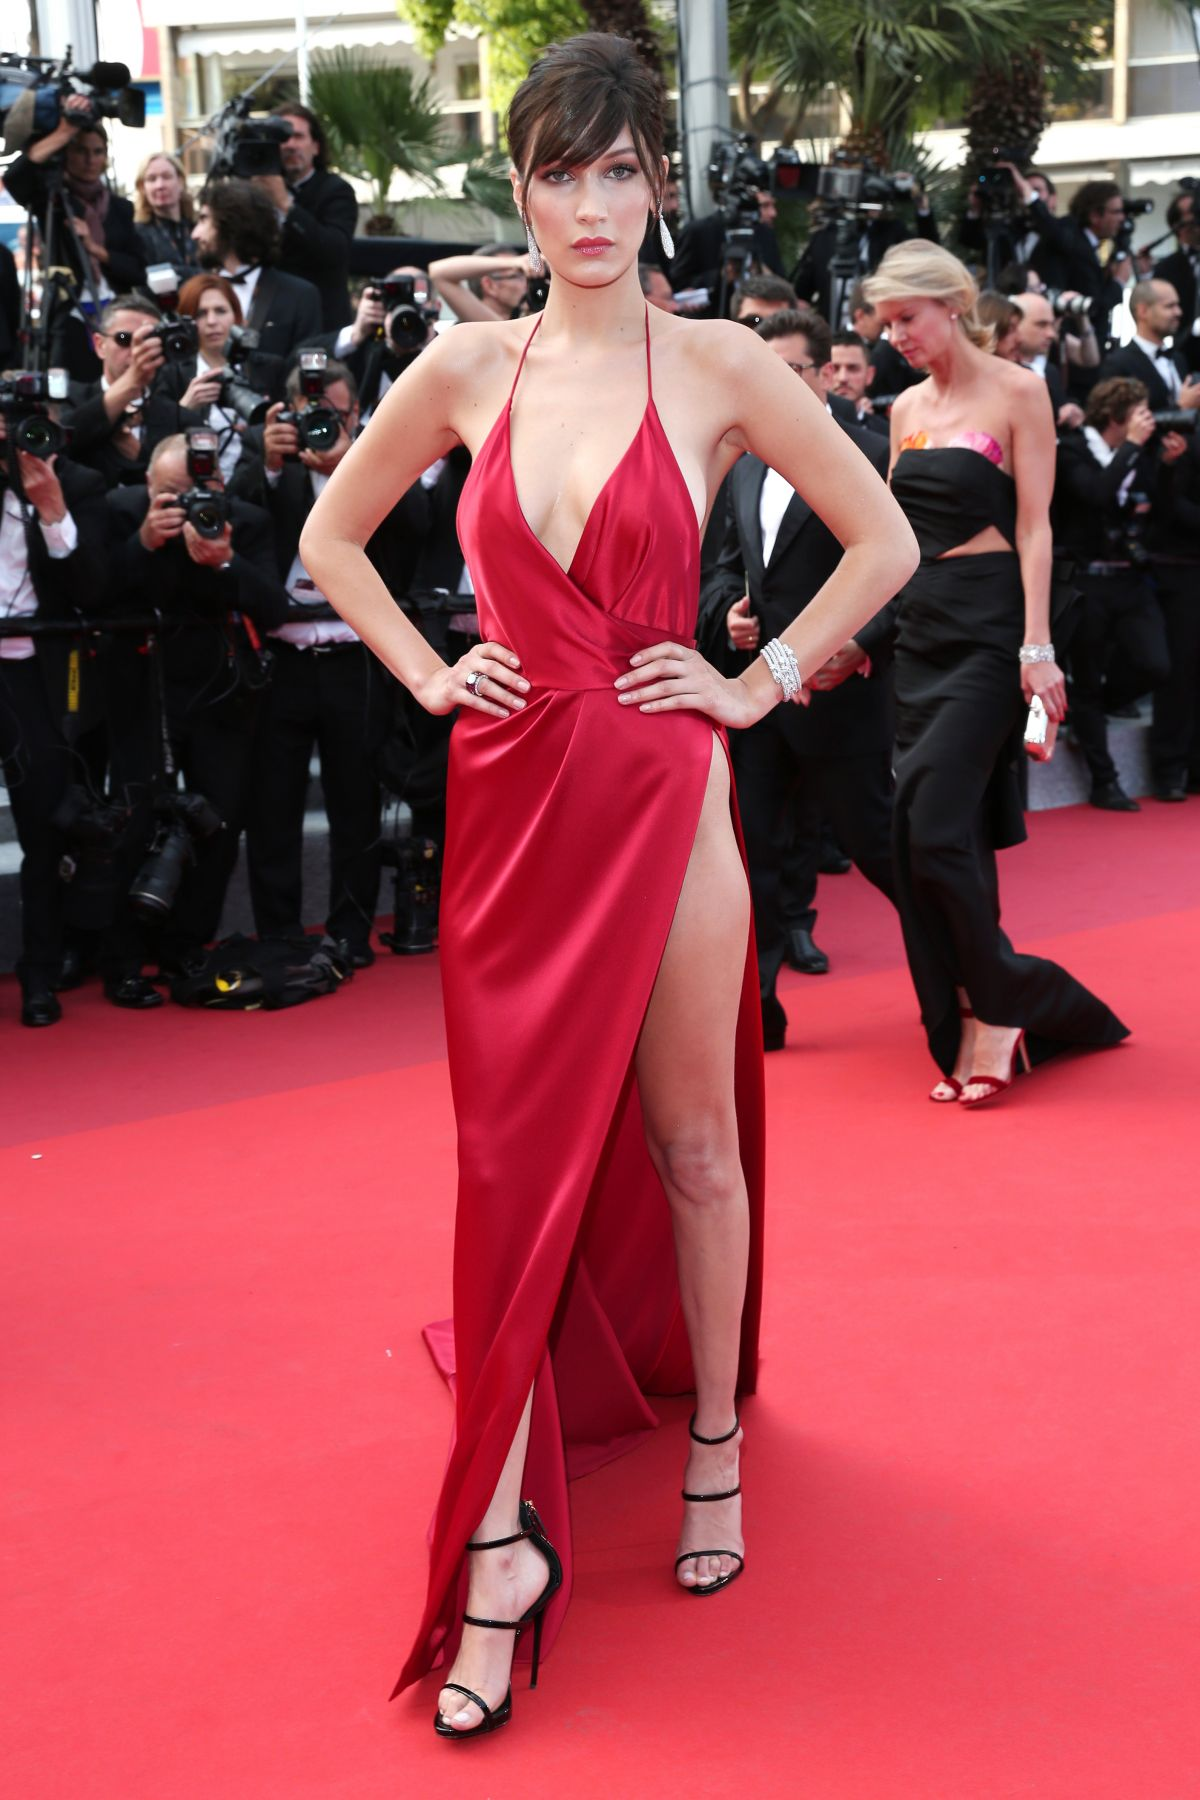 http-forum.ns4w.org-showthread.php-570203-bella-hadid-the-unknown-girl-premiere-at-69th-annual-cannes-film-festival-05-18-16-adds-s-08ce82a2f025b7305318944fd6bd9518_2